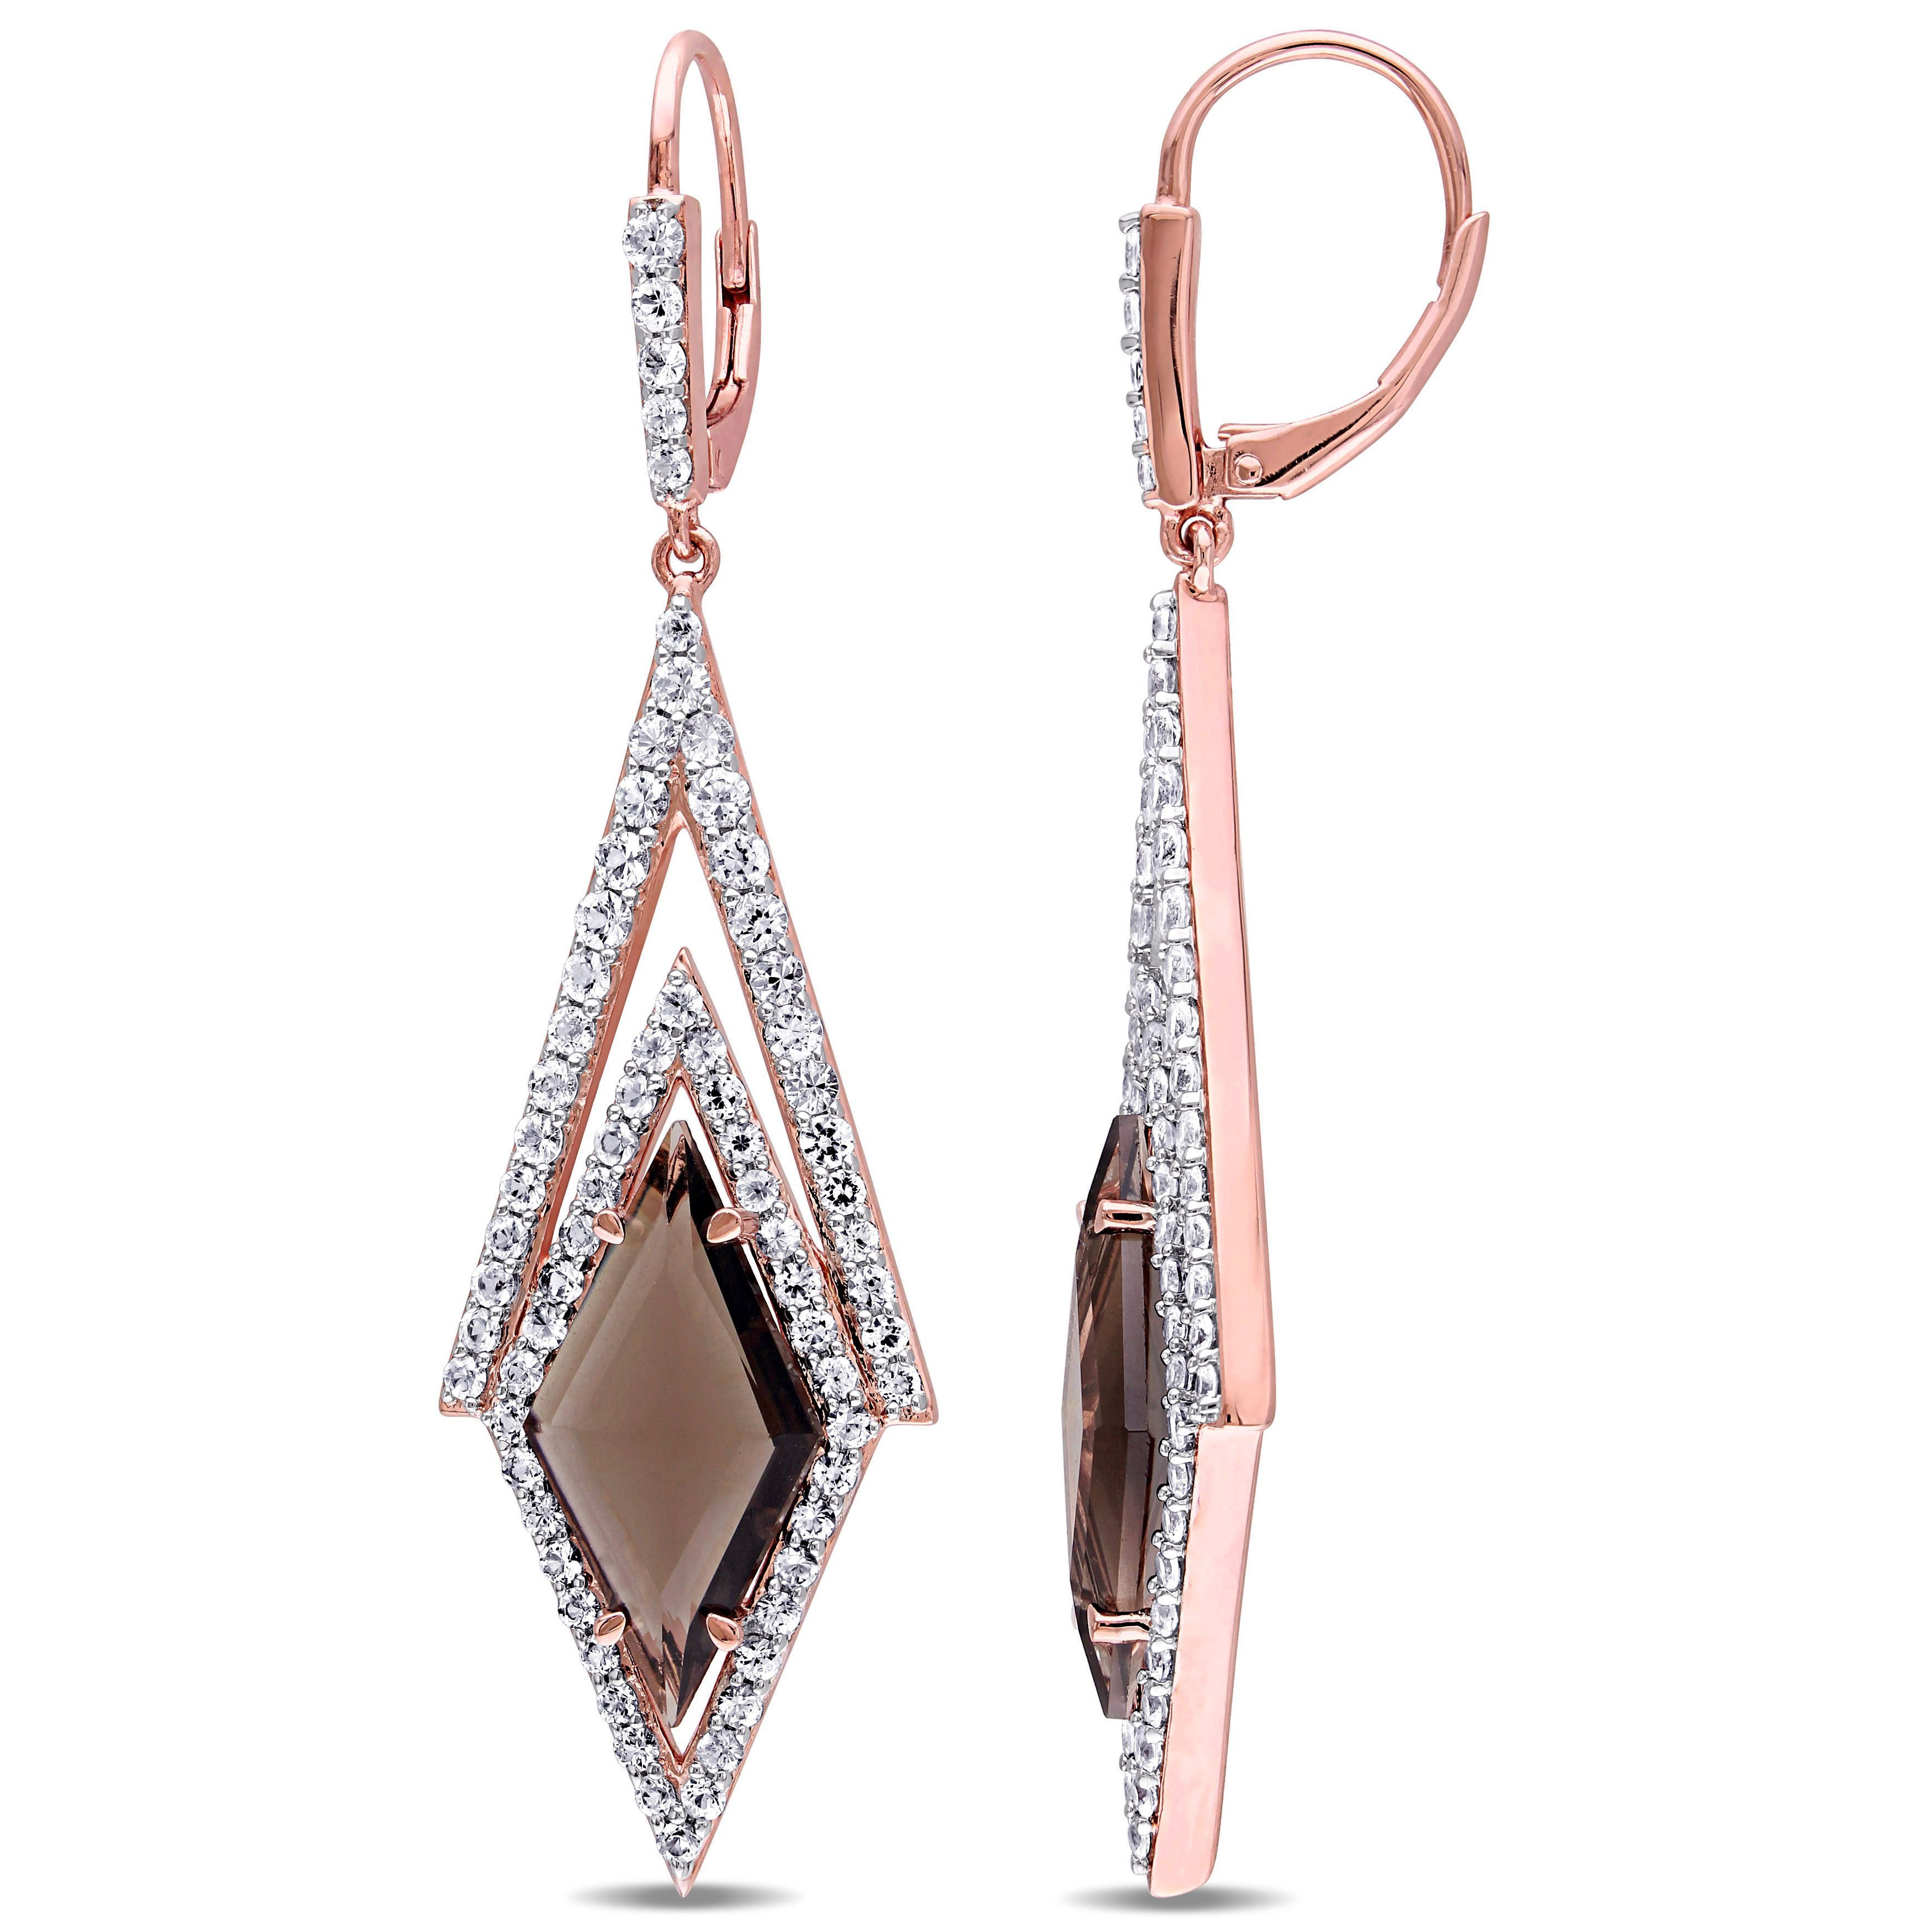 Versace 18k Rose Goldplated Sterling Silver 19.69 Abbigliamento Sportivo SRL Smokey Quartz and White Sapphire Drop Earrings Women's